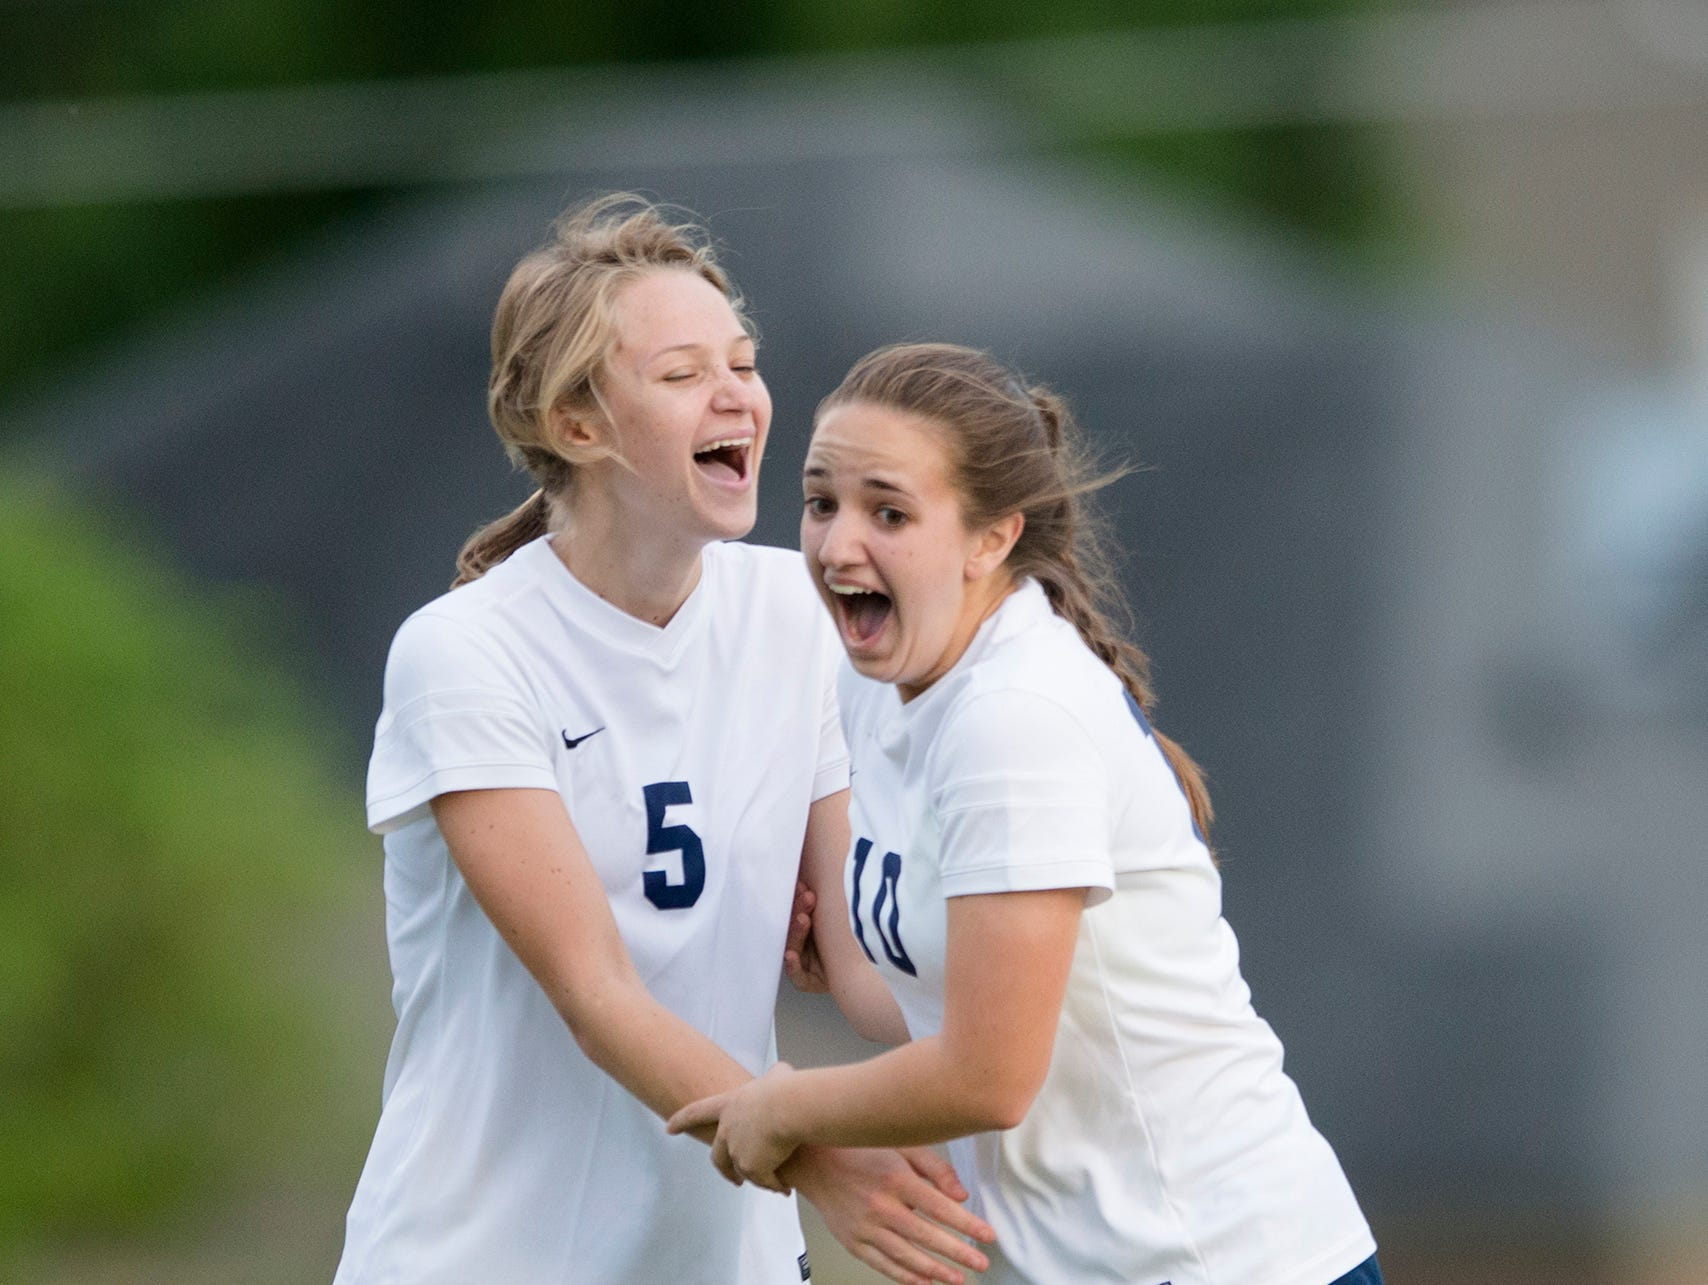 Brooke Engles (10) and Tessa Evans (5) of St. James celebrate after Engles scored a goal off a free kick about 40 yards out during the AHSAA Class 4A-5A playoff match against LAMP on Friday.